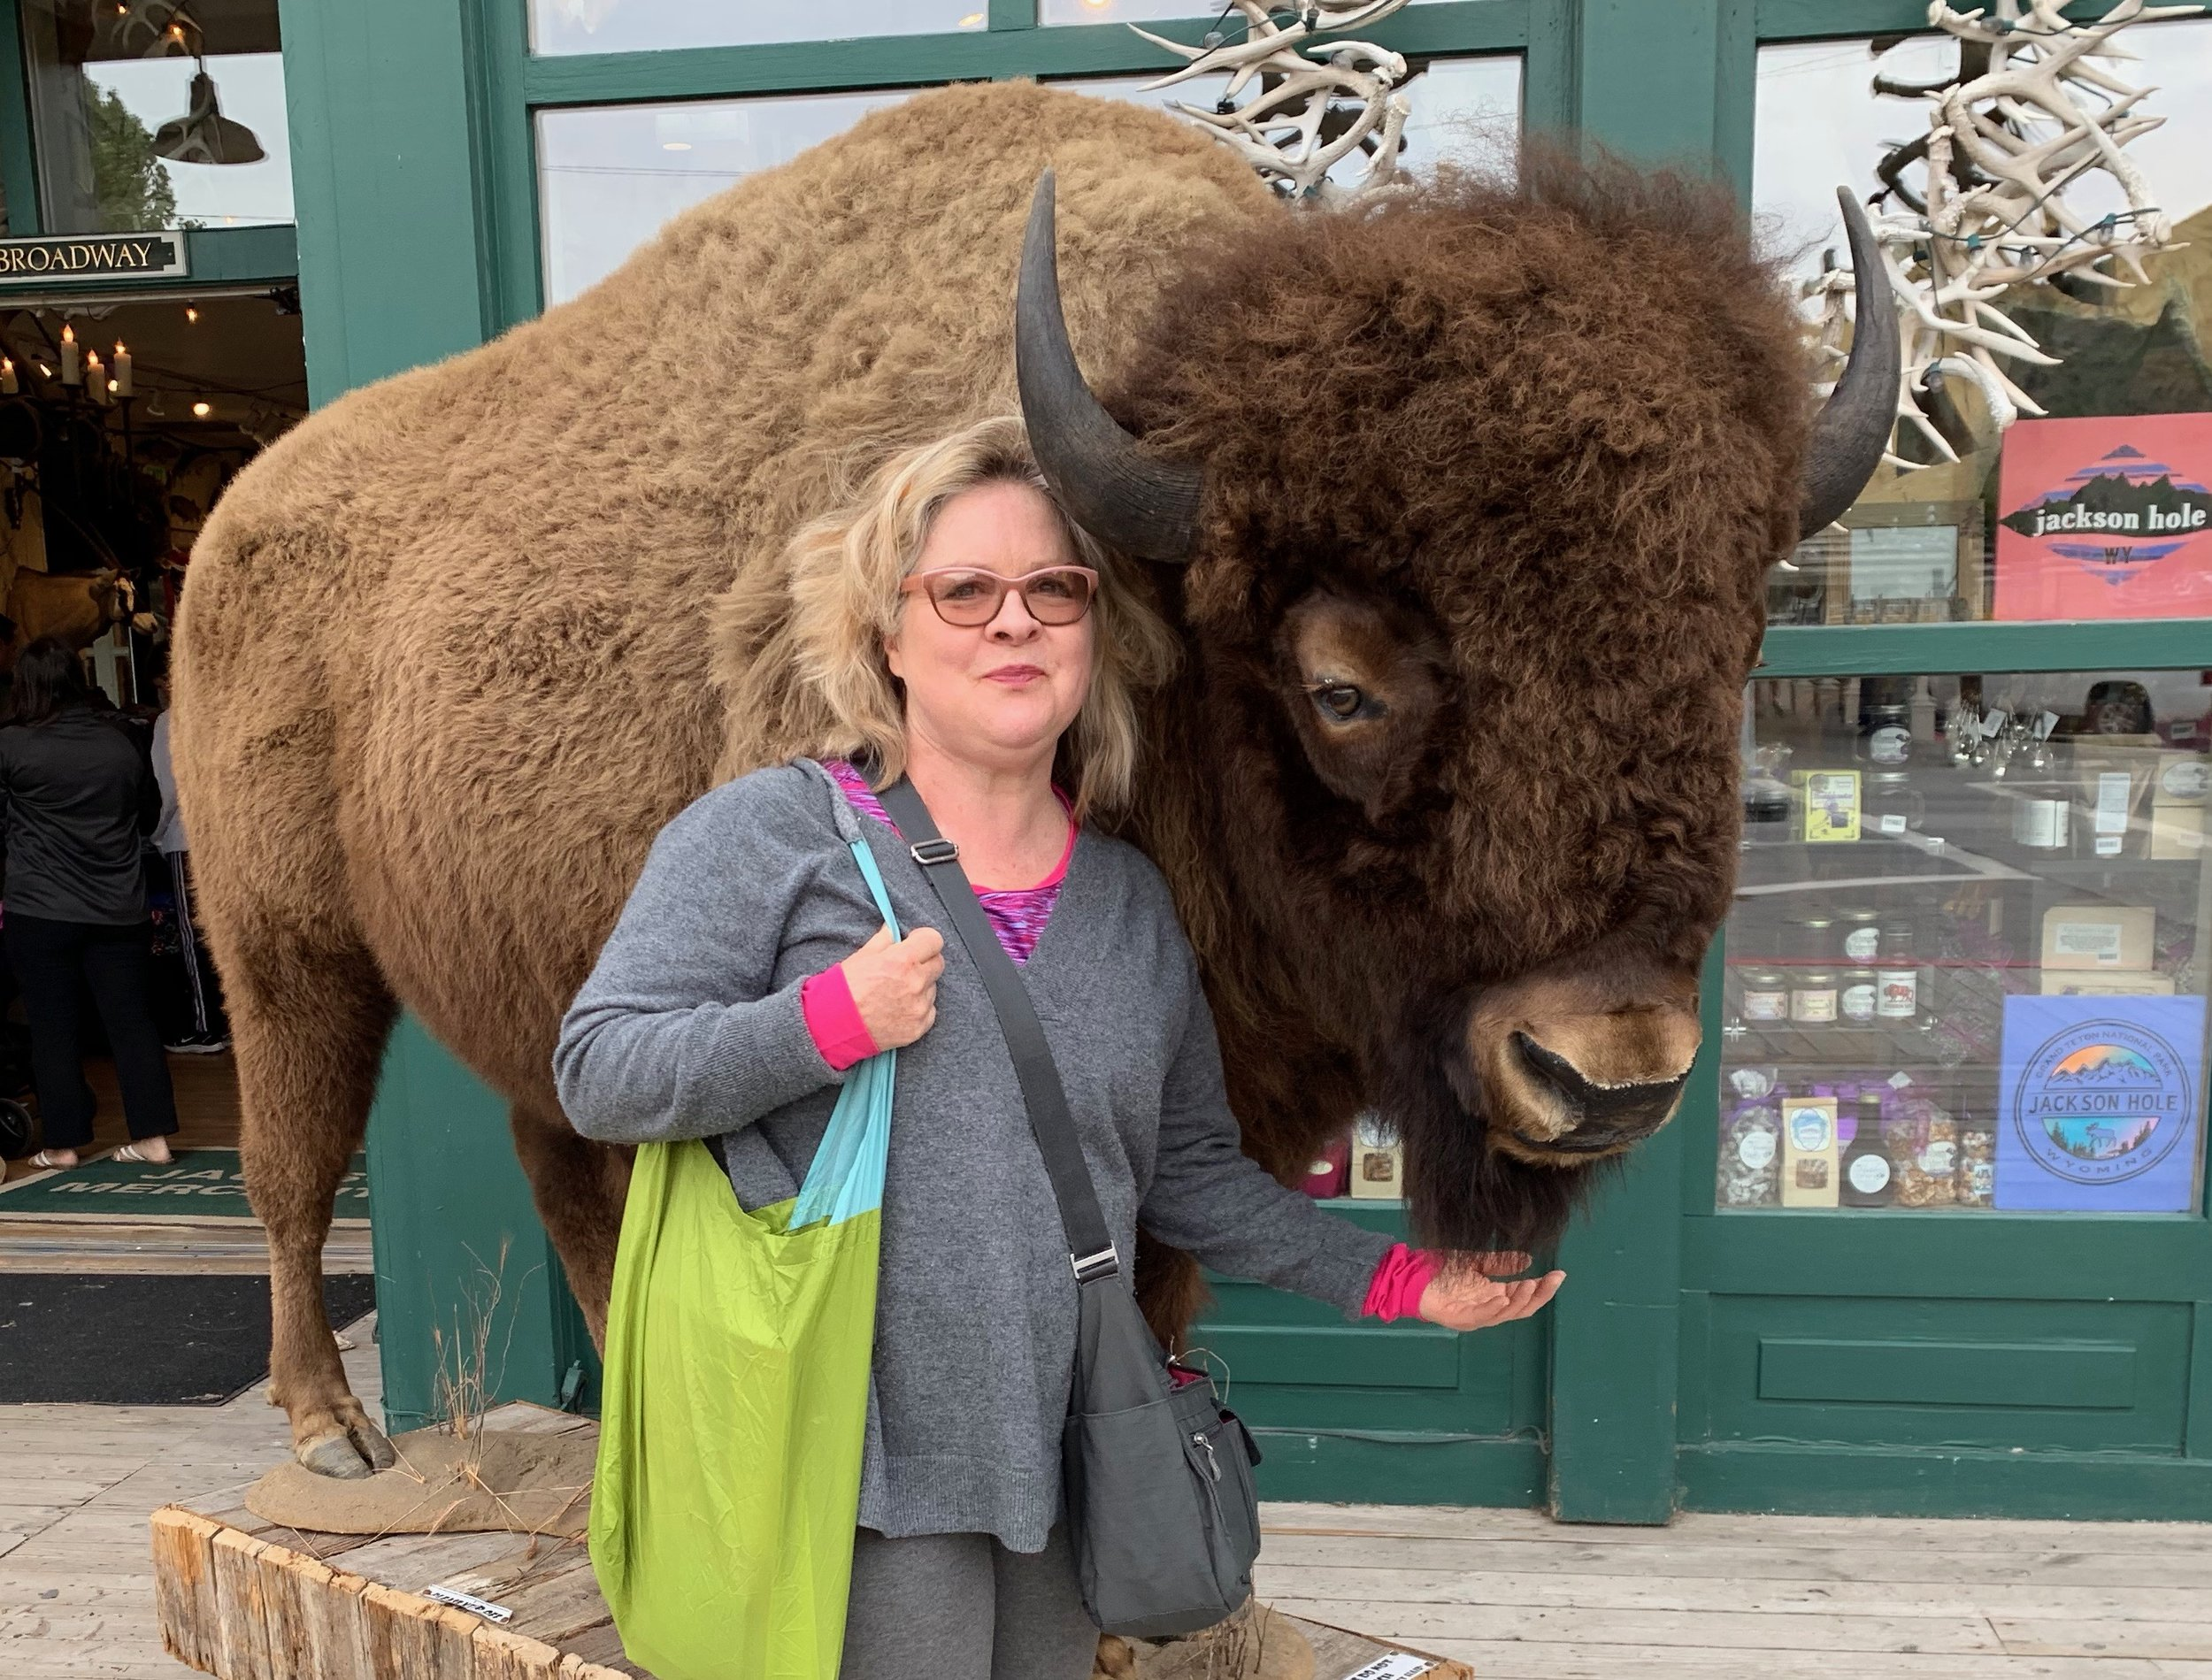 This is the closest I ever got to a bison, in Jackson Hole…